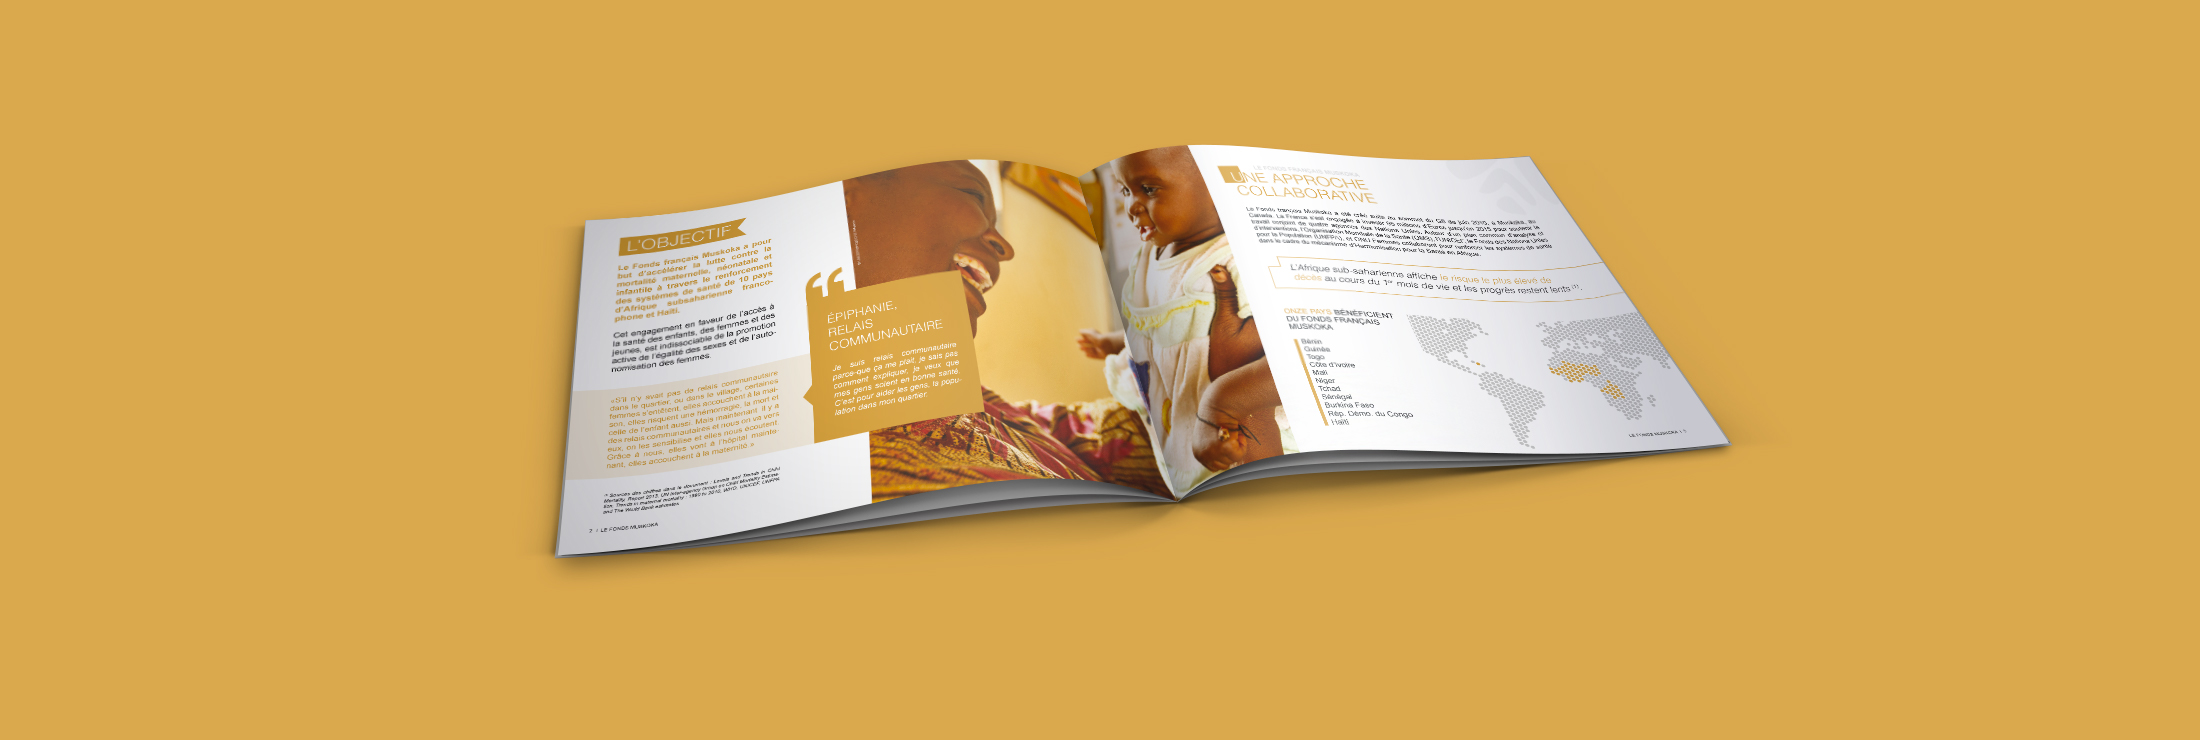 Unicef-osb-communication-print-design-brochure